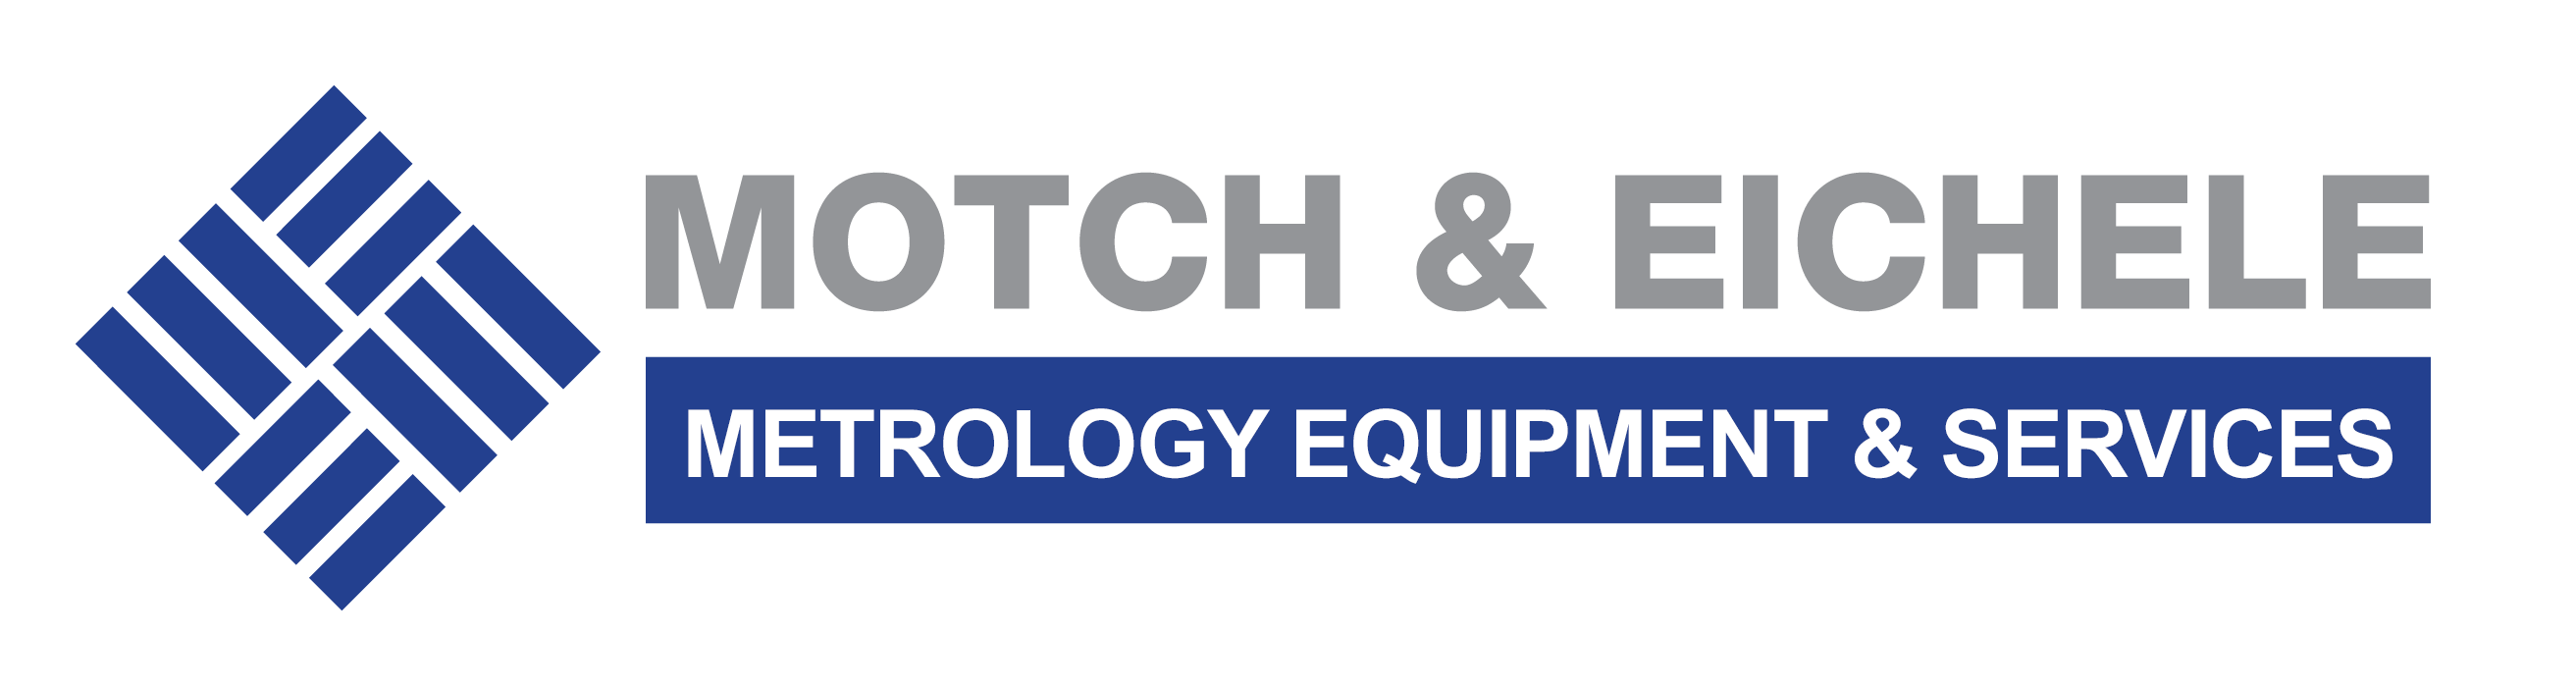 Motch & Eichele Exclusive Distributor for AIMS Metrology 5-Axis CMMs